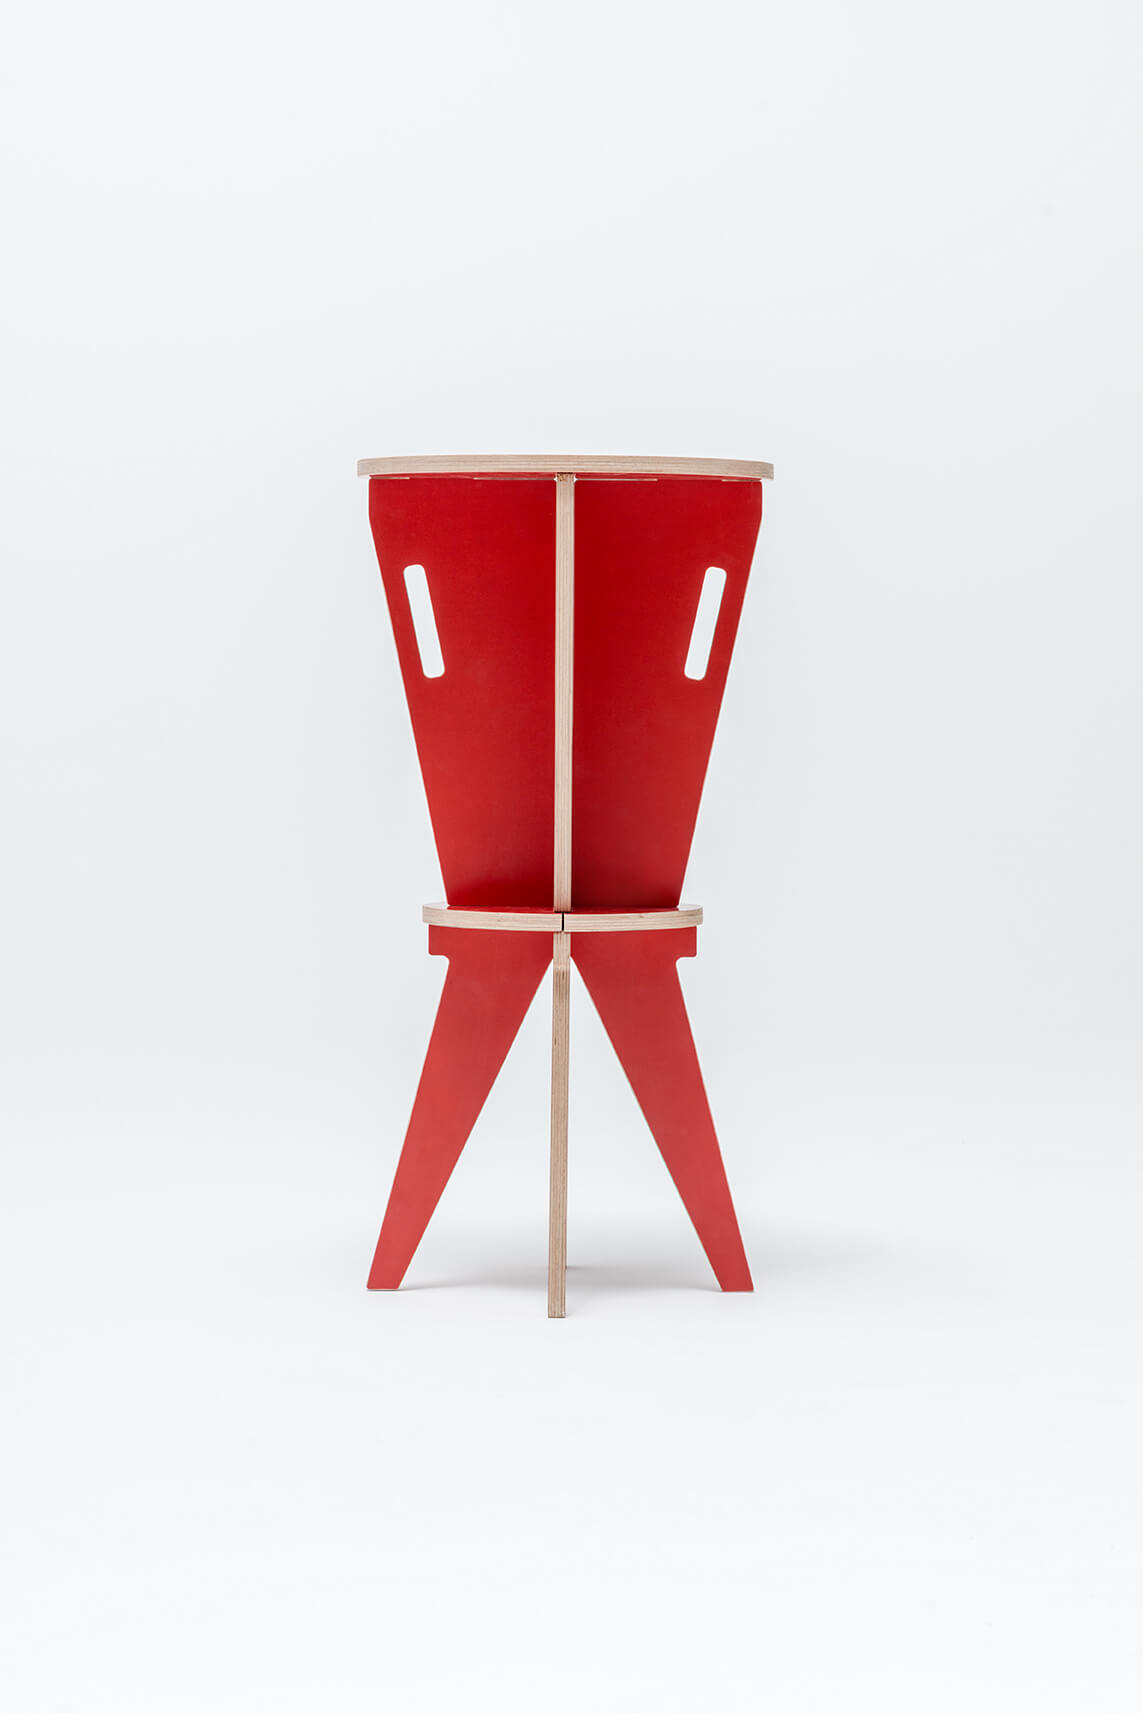 st-hocker-swallow-tail-furniture-red